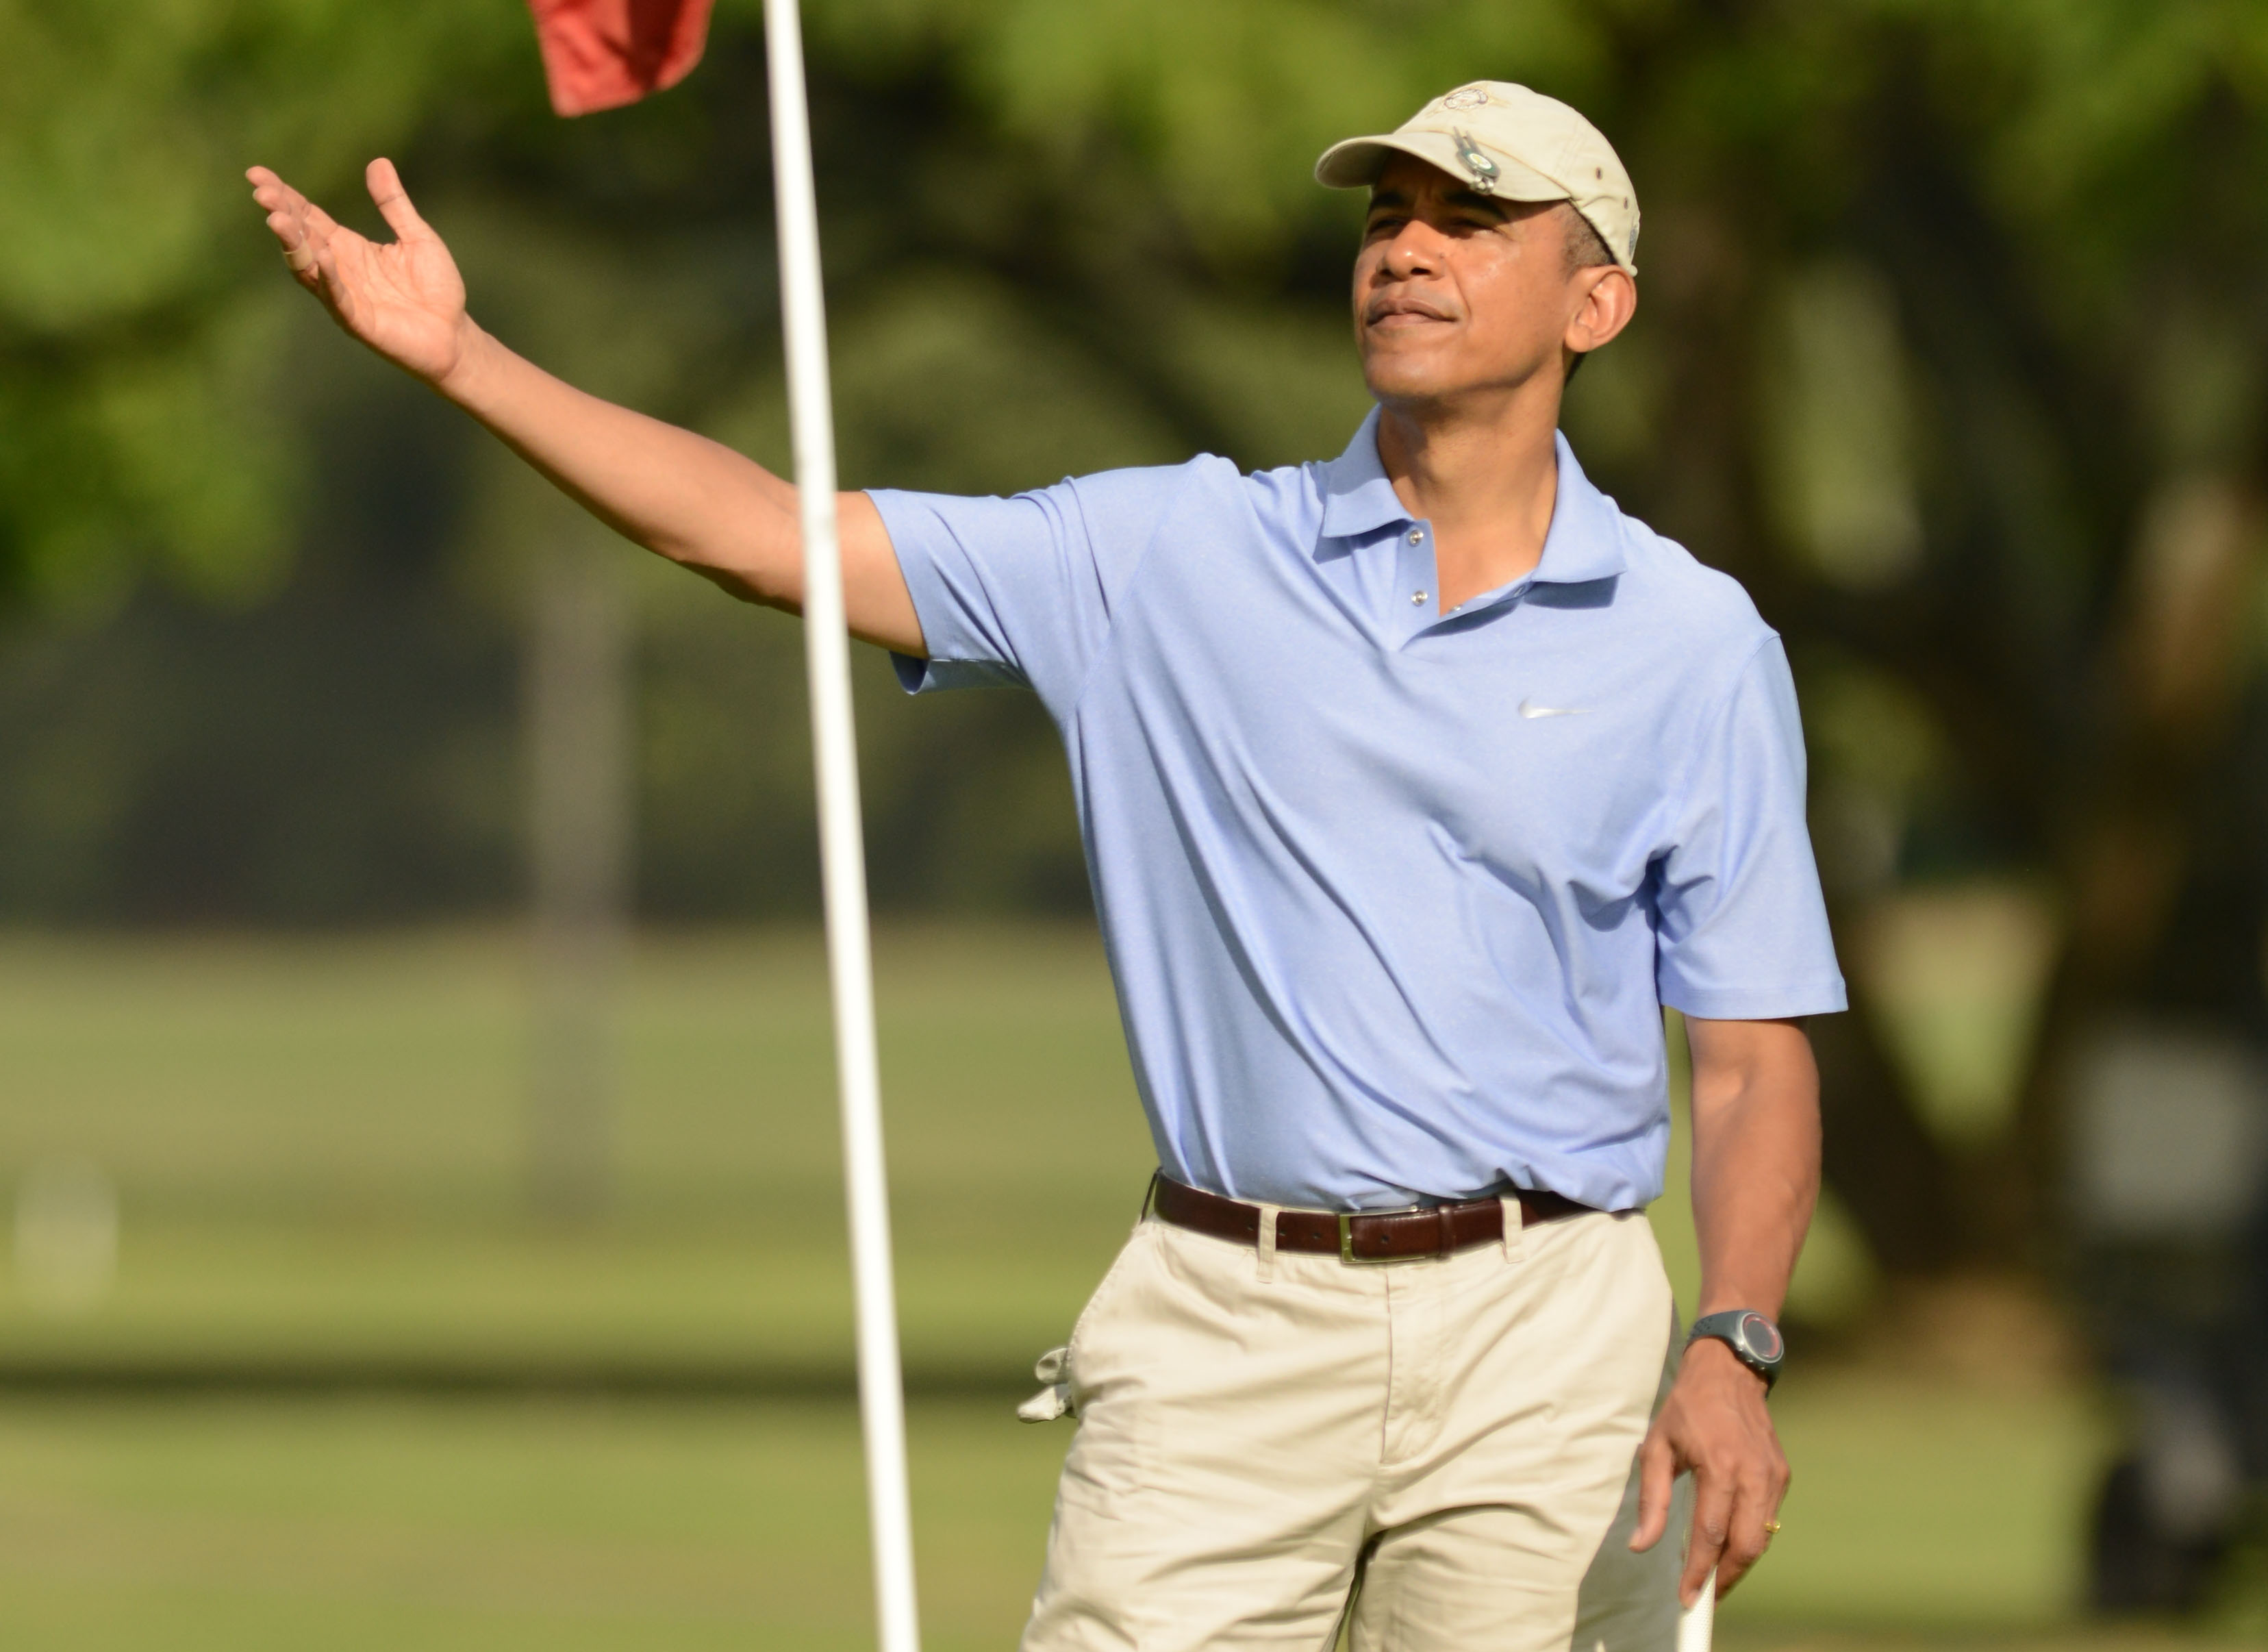 President Barack Obama reacts on the 2nd green while golfing with the Prime Minister of New Zealand John Key, at Marine Corps Base Hawaii's Kaneohe Klipper Golf Course, Kaneohe, Hawaii, January 2, 2014. President Obama played a round of golf with Prime Minister of New Zealand John Key, the Prime Ministers son Max Key and White House aide Marvin Nicholson. UPI/Cory Lum